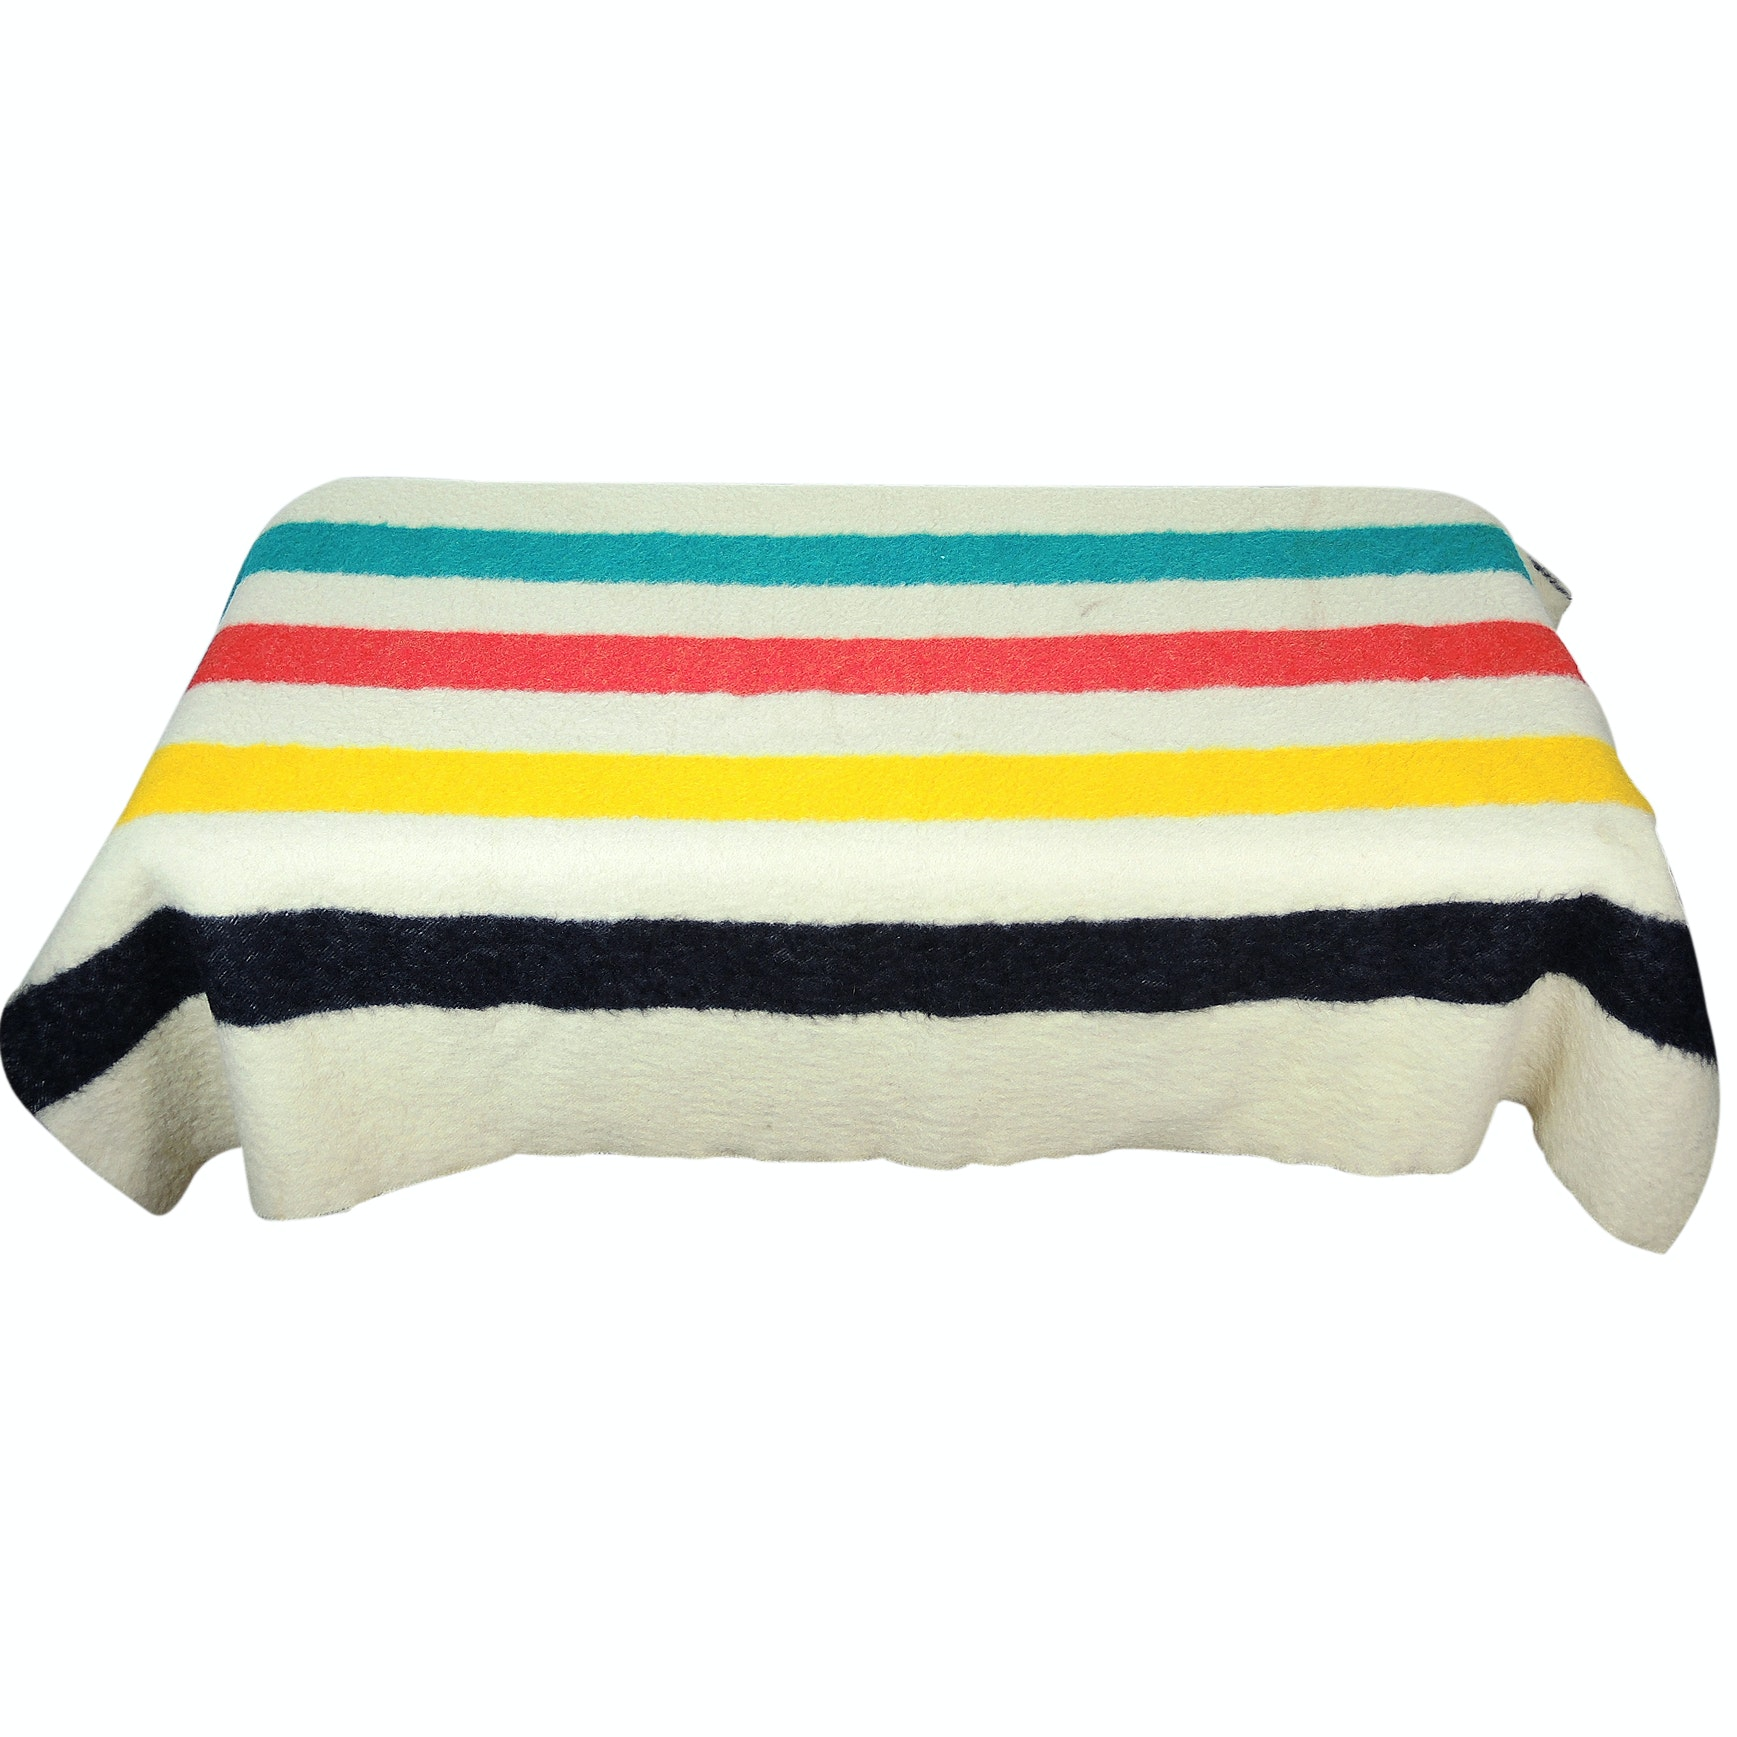 Hudson's Bay Point Wool Blanket